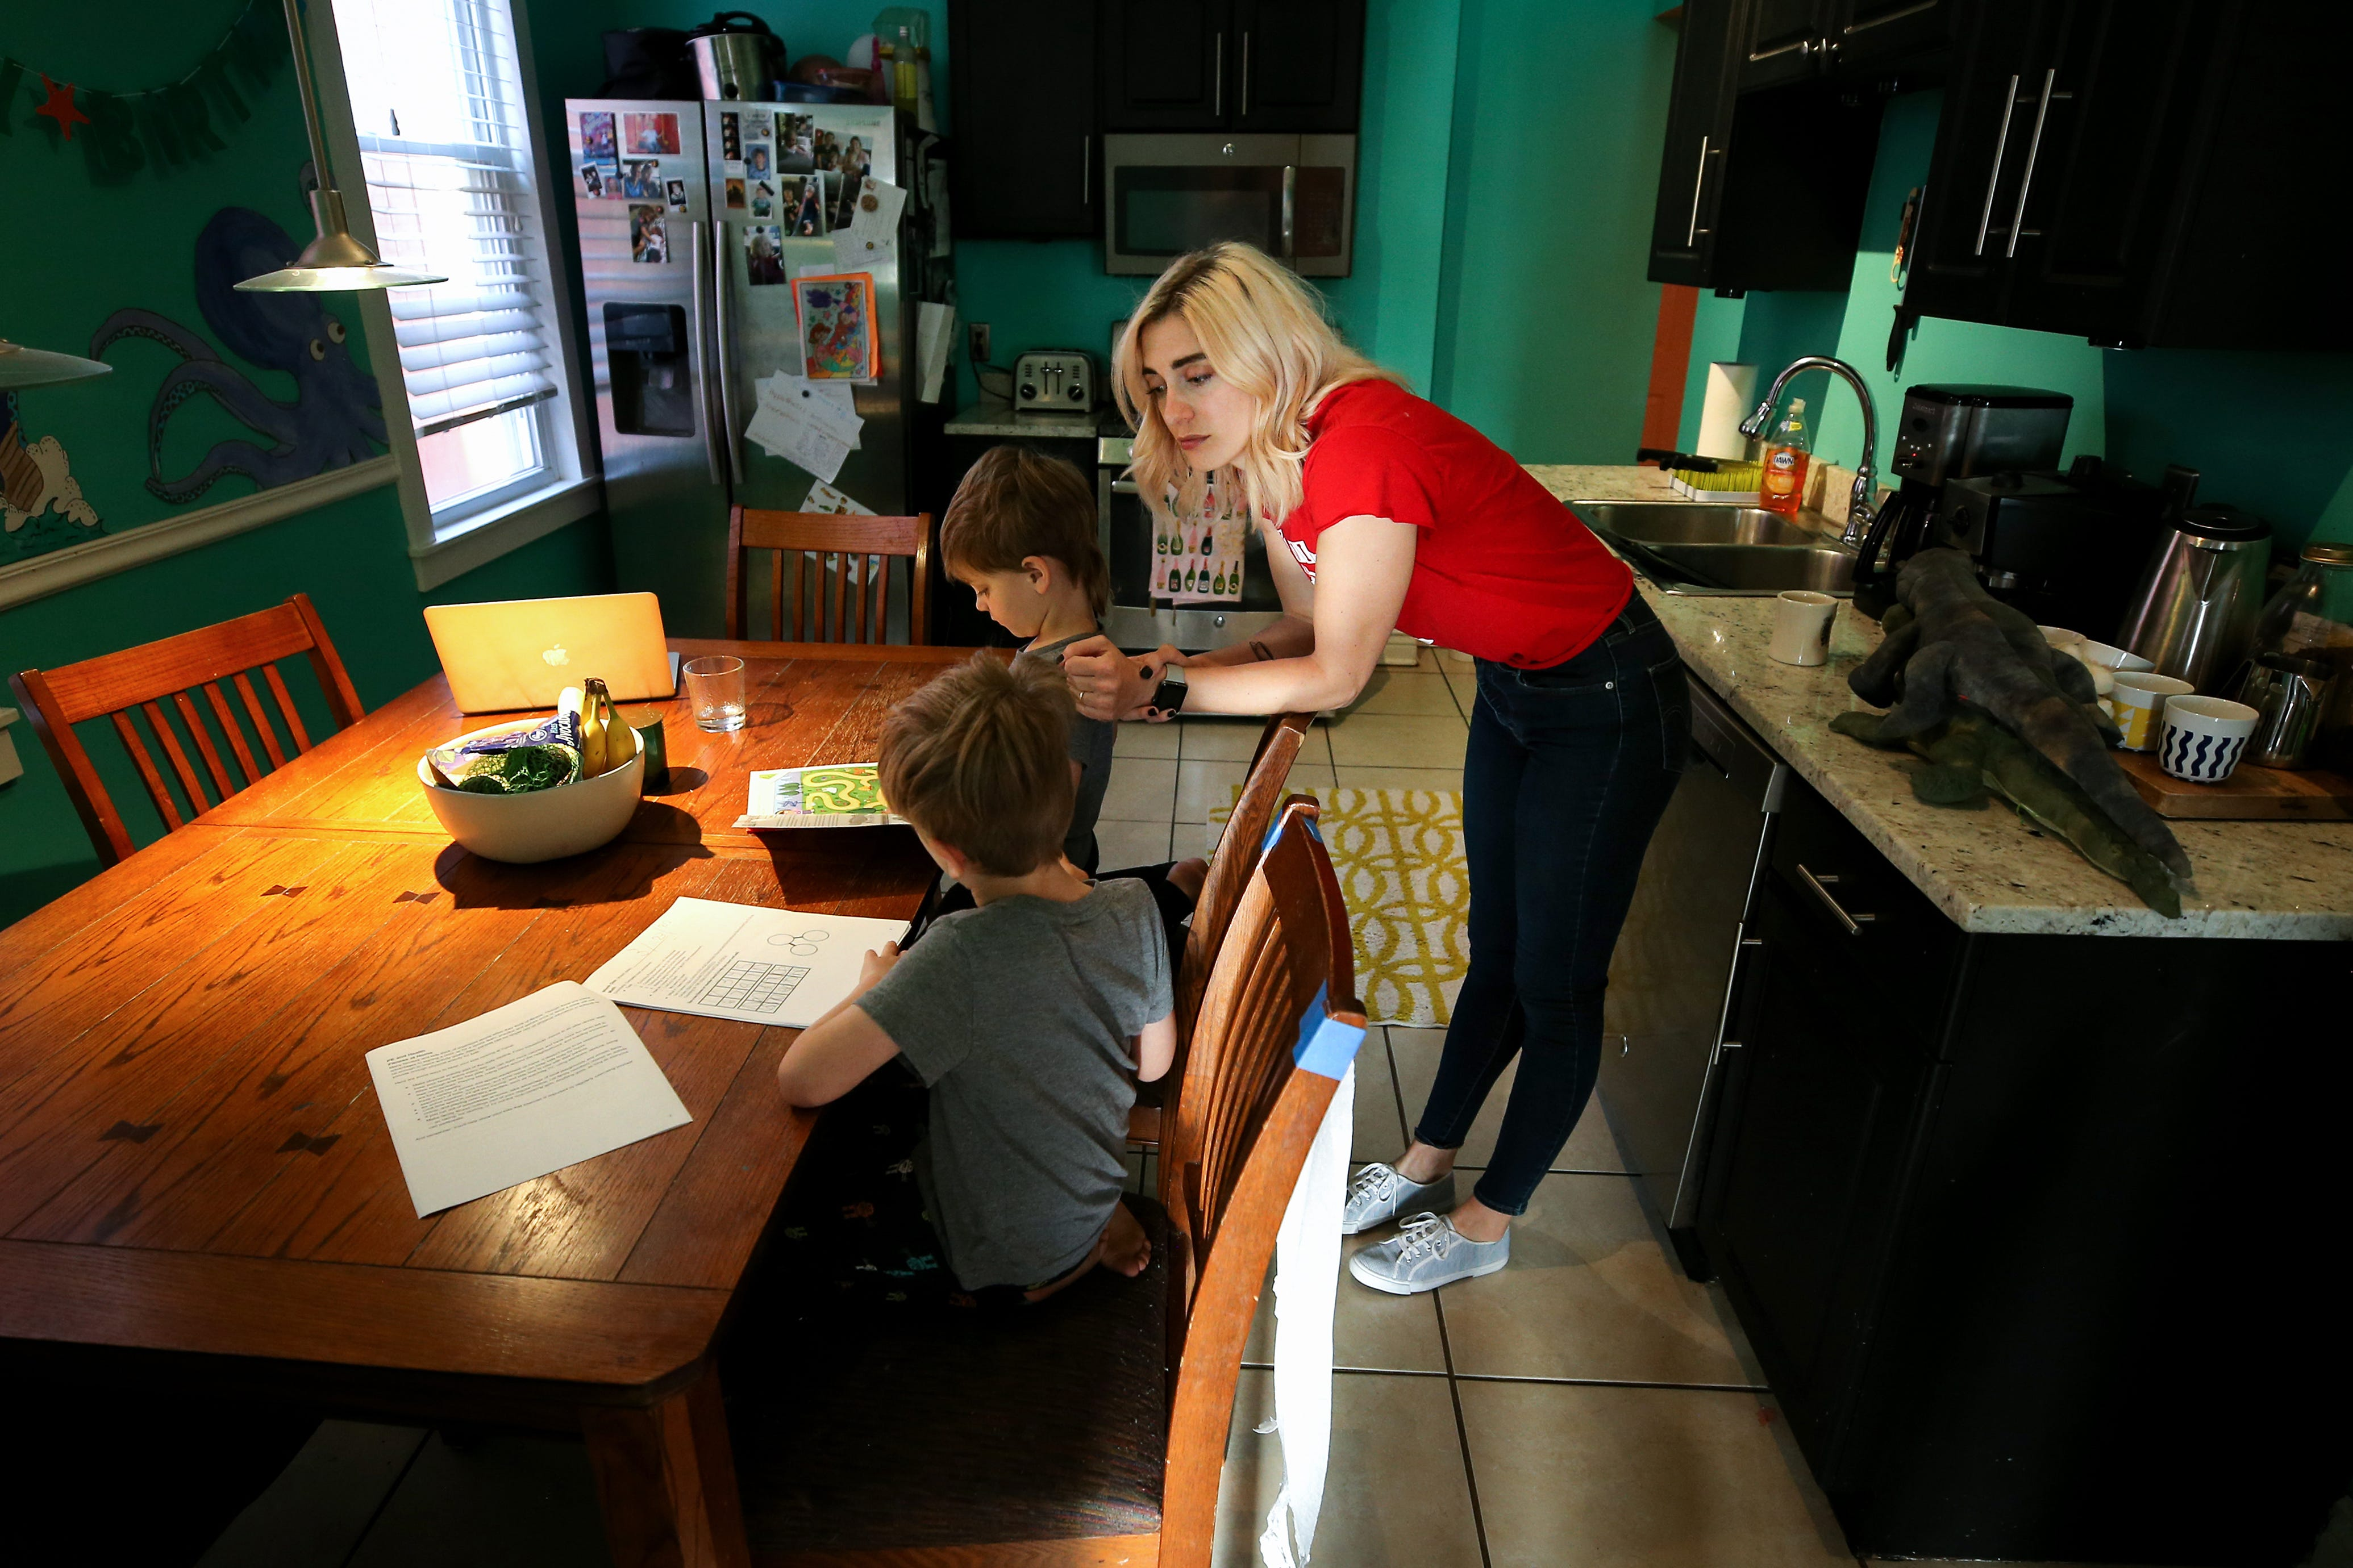 Emily Minelli, a Princeton High School French teacher, begins the day with educational work with her two sons, Nico, 3, top, and Tommy, 6, bottom, Thursday, April 2, 2020, in Cincinnati's Northside neighborhood